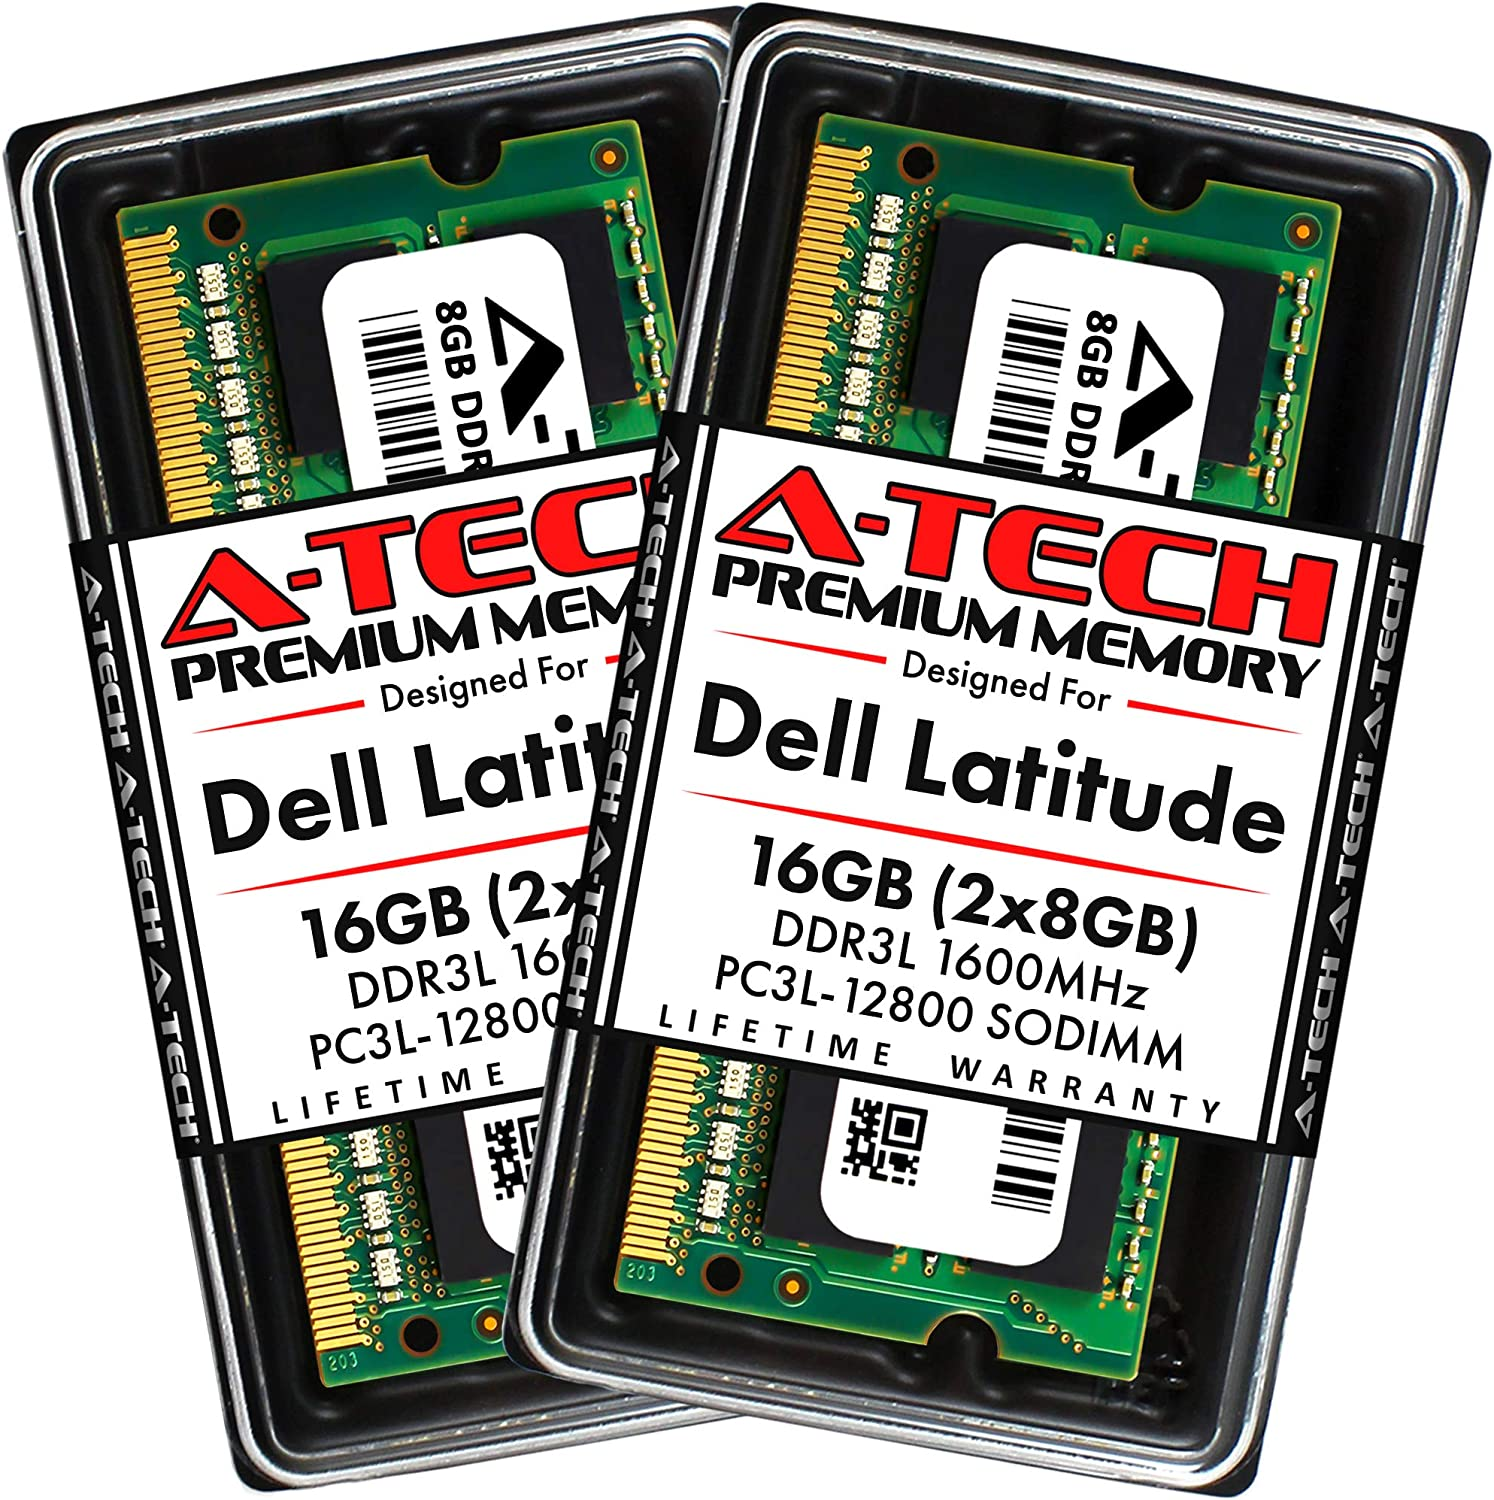 A-Tech 16GB (2x8GB) RAM for Dell Latitude E6530, E6430, E6430s, 6430u, E6330, E6230, E5530, E5430, 3330 | DDR3/DDR3L 1600MHz SODIMM PC3L-12800 Laptop Memory Max Upgrade Kit